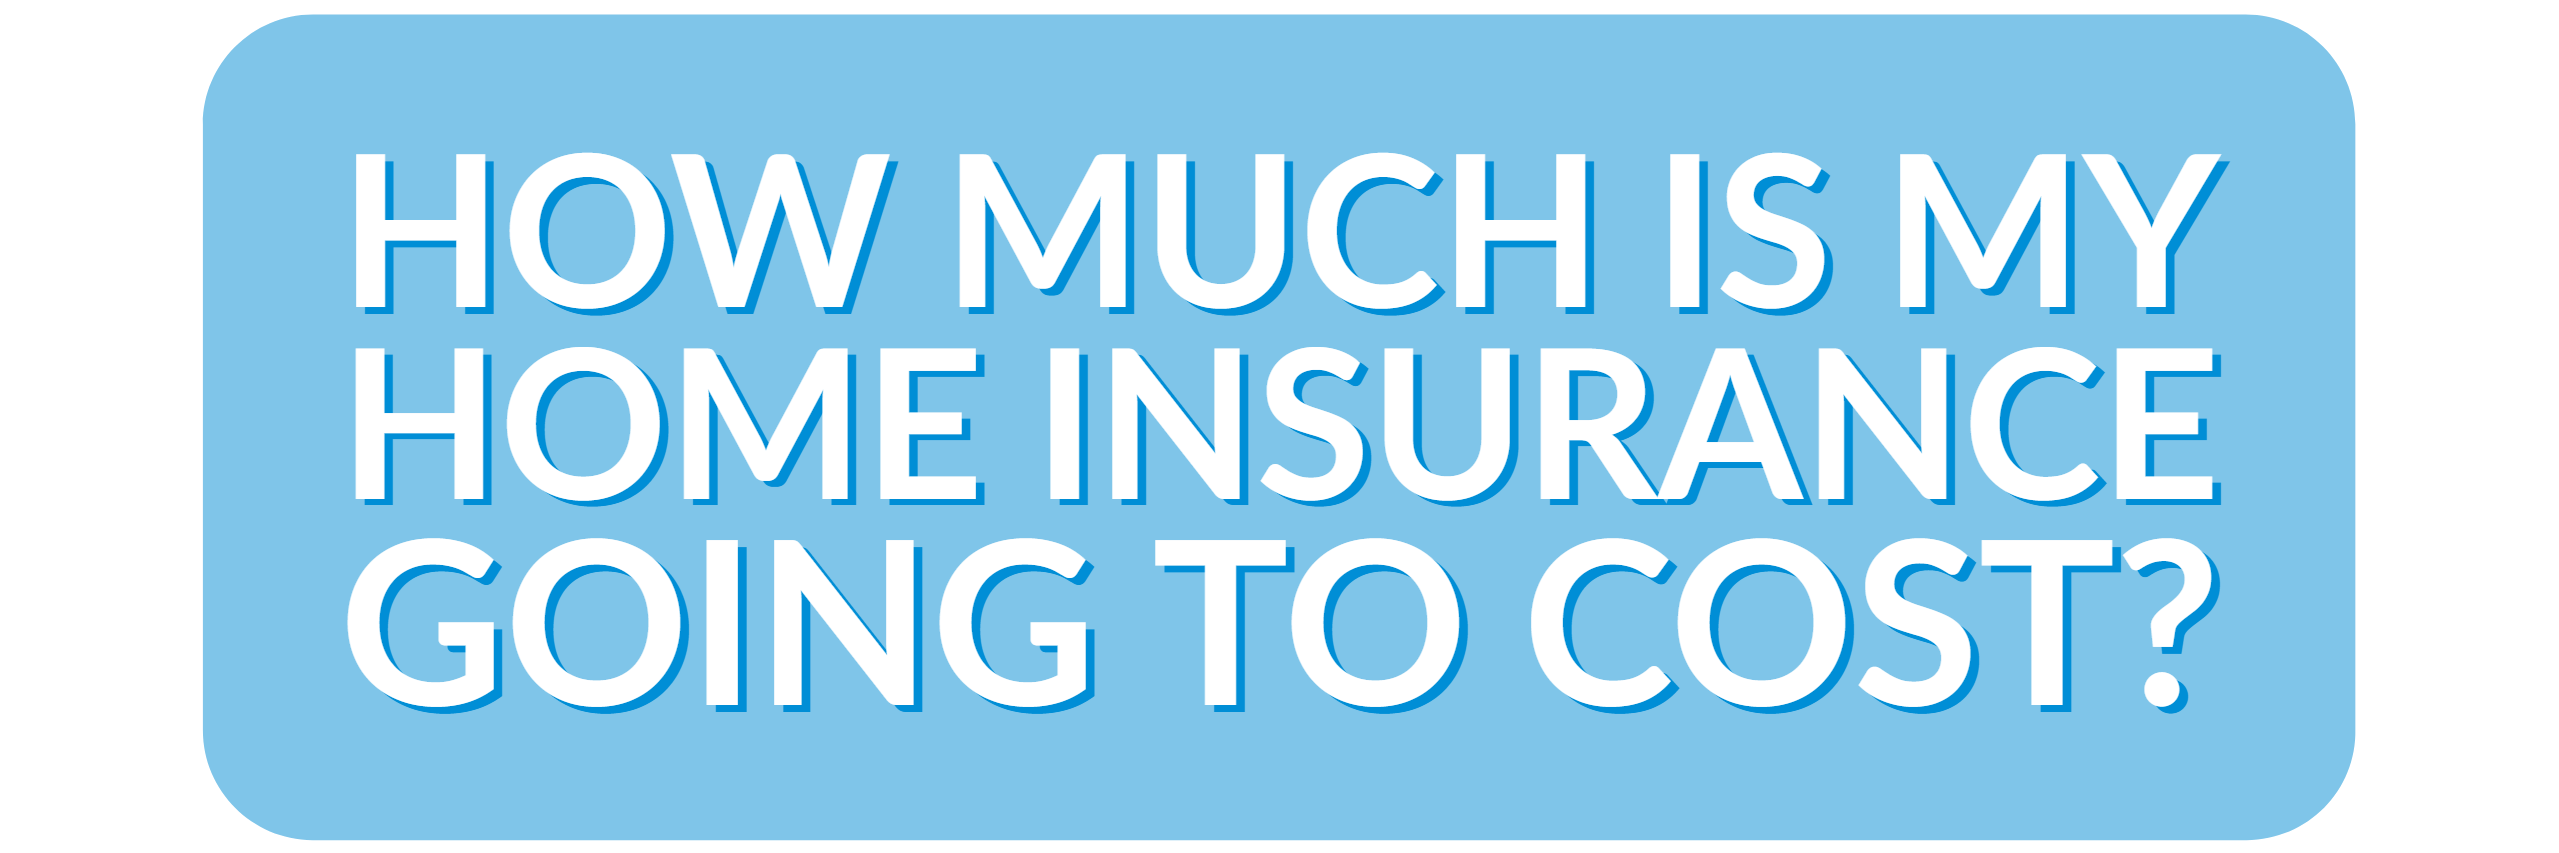 How much is my home insurance going to cost? [quote]